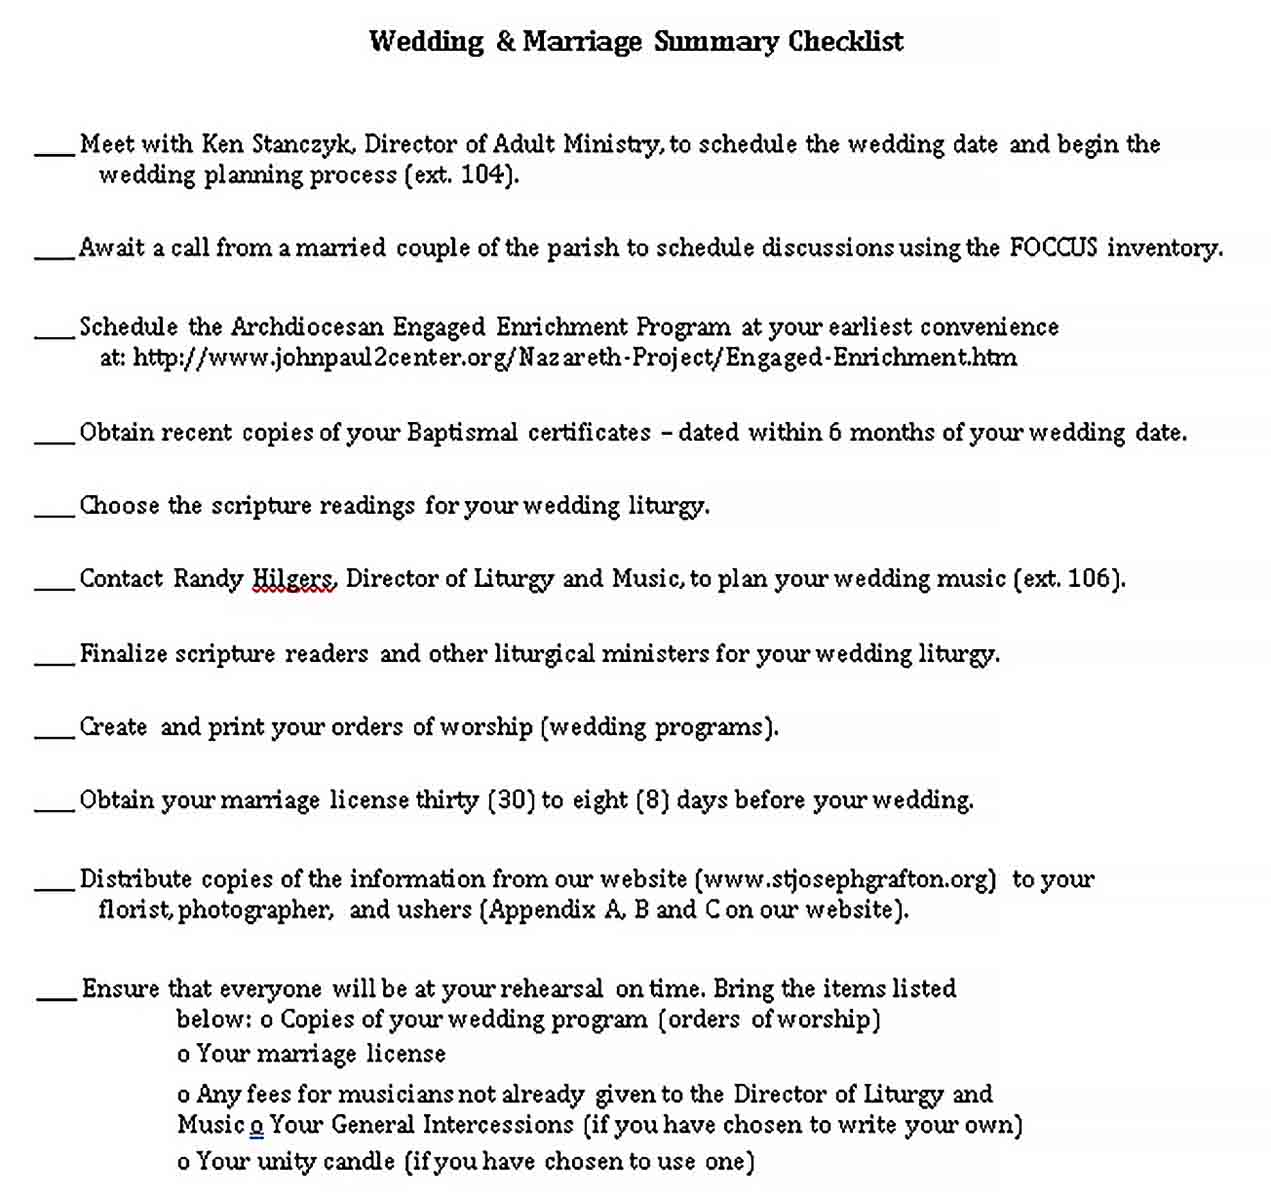 Template Wedding Summary Checklist 1